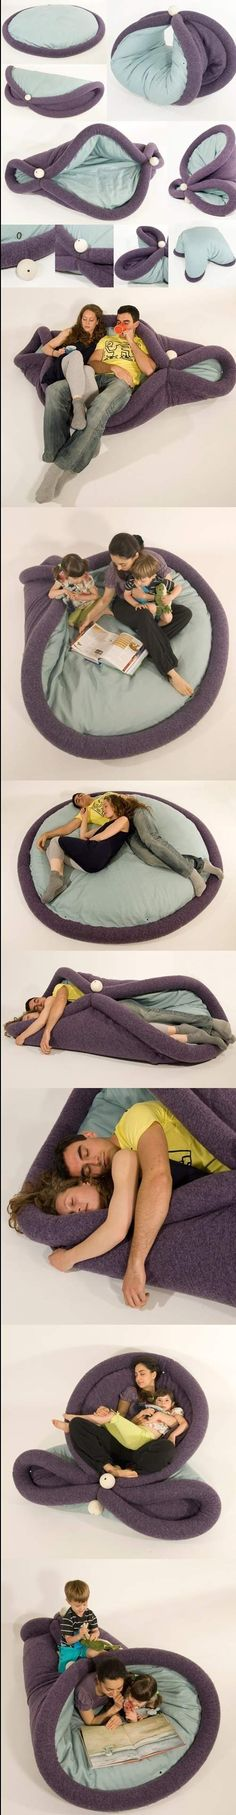 must have original carpet pillow